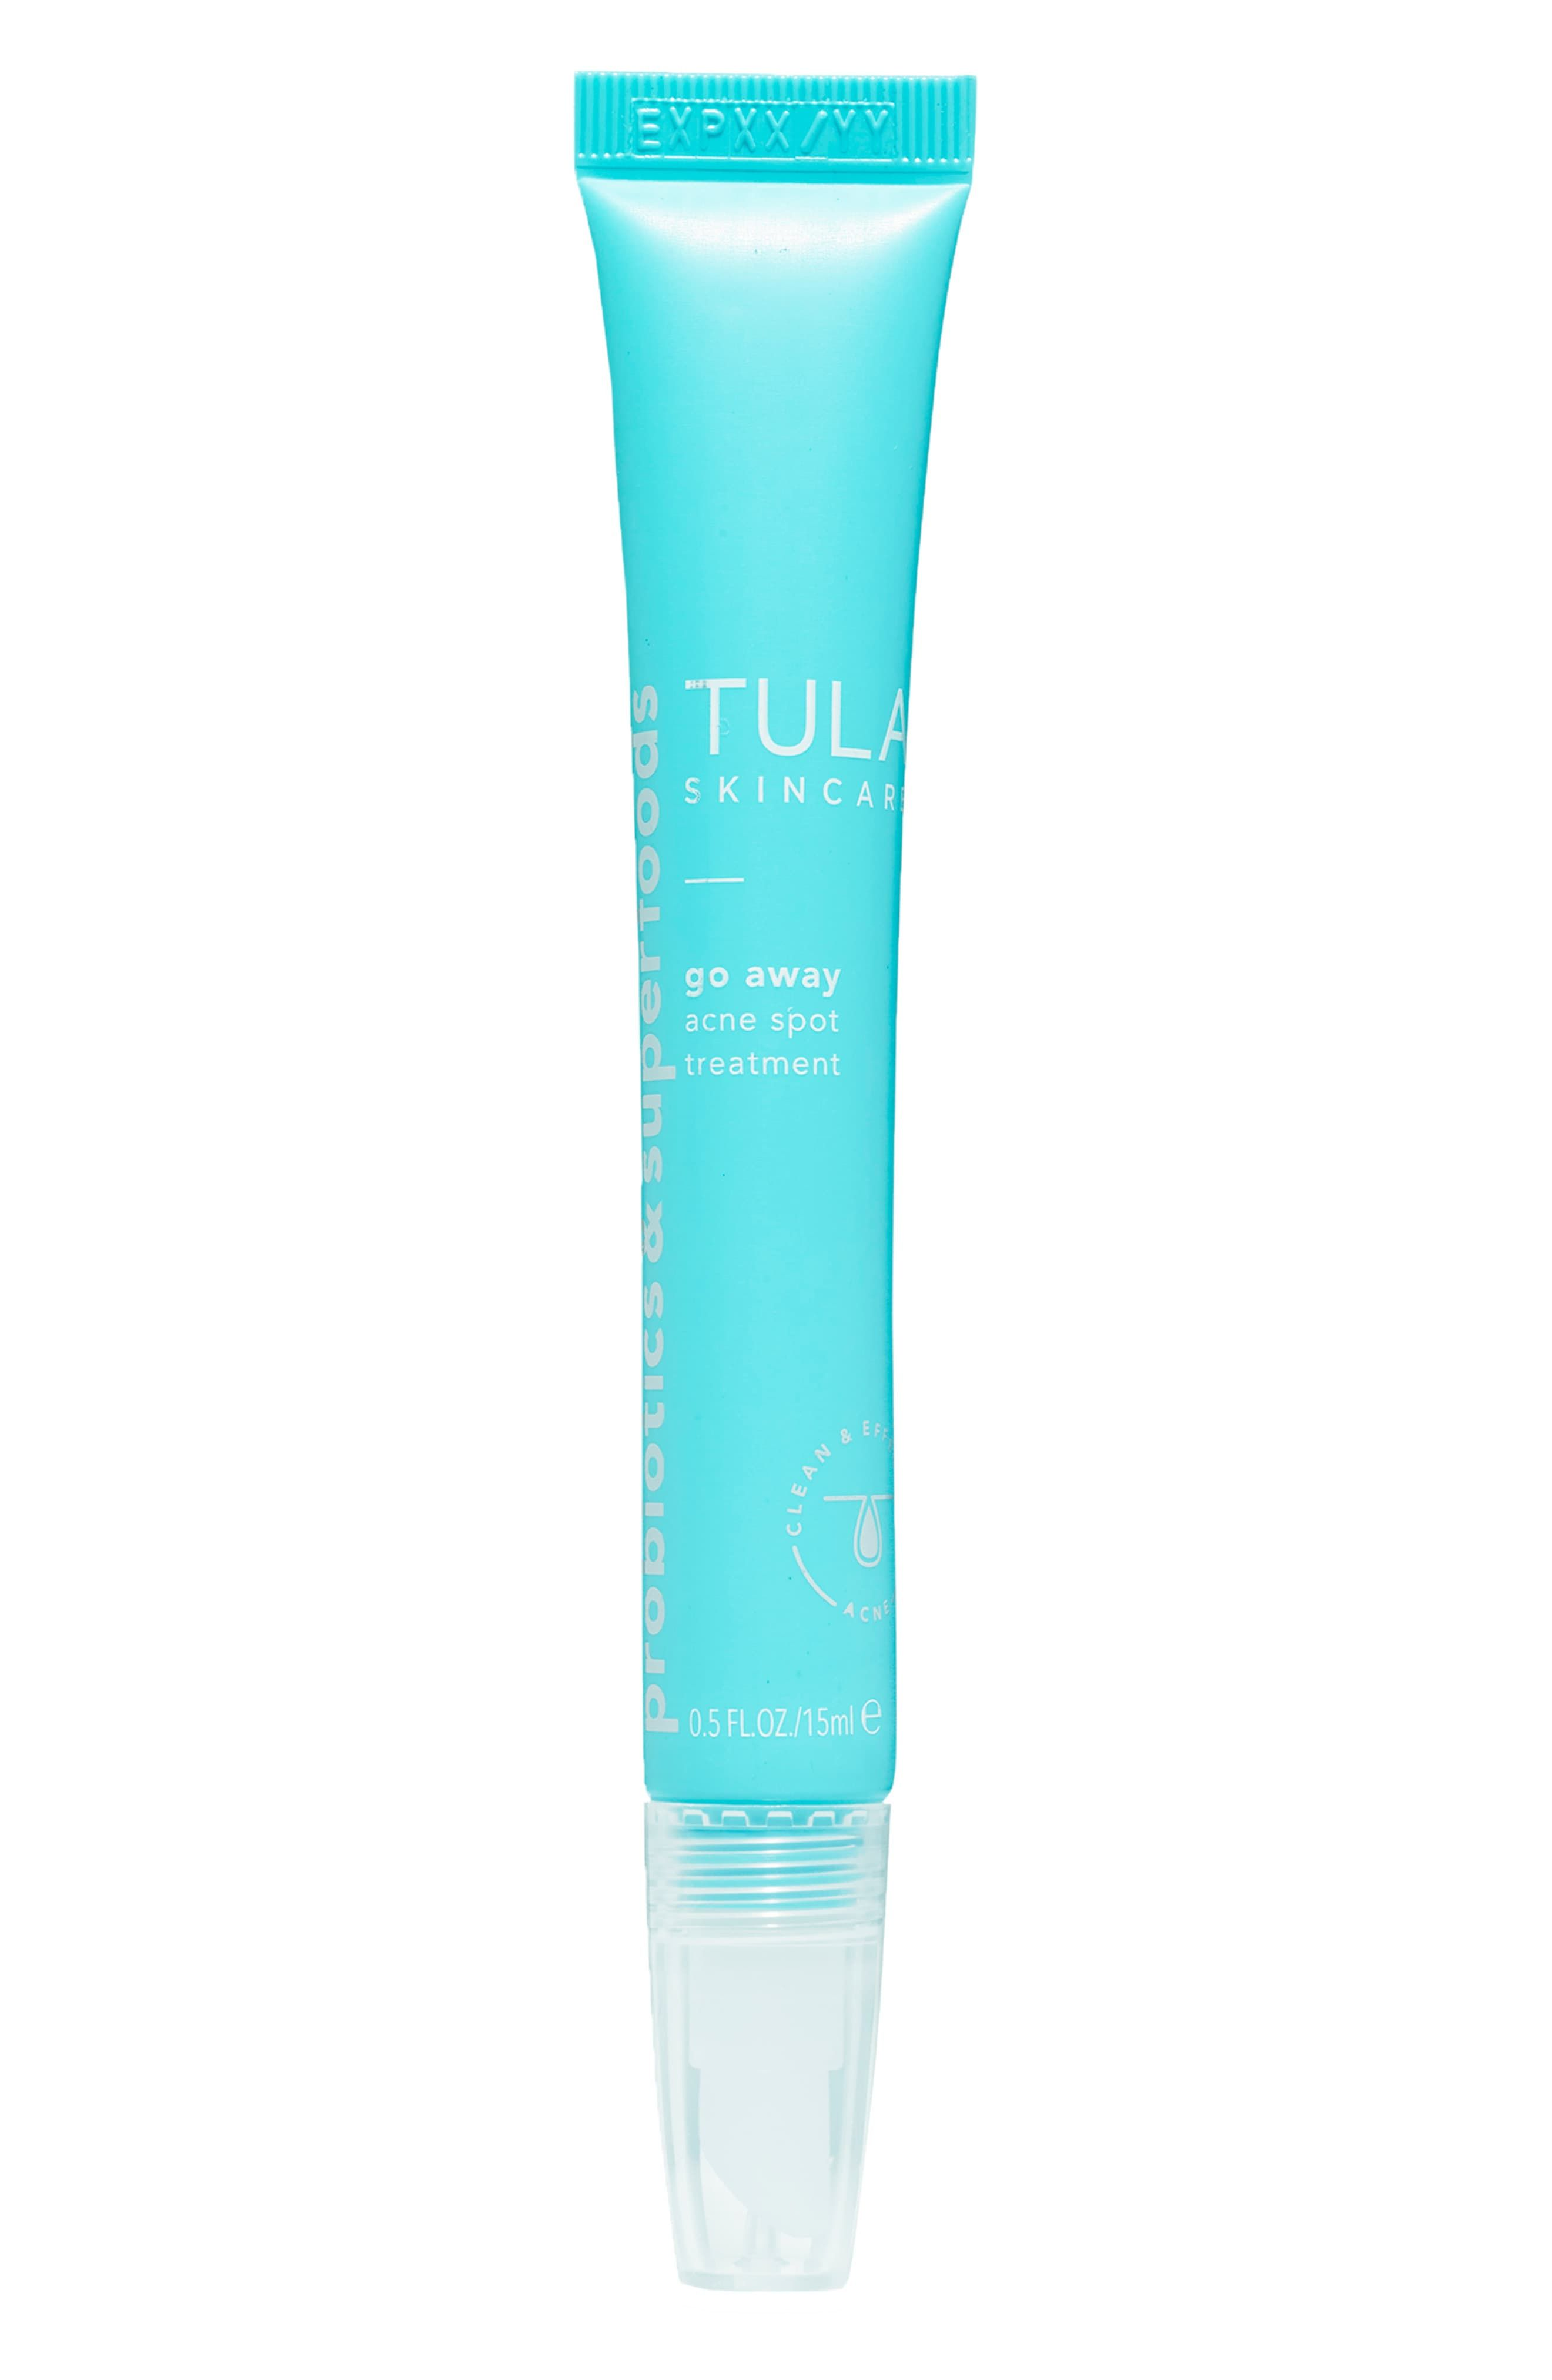 Tula Probiotic Skincare Clear It Up Acne Clearing Correcting Gel Acne Spot Treatment Acne Spots Tula Skincare